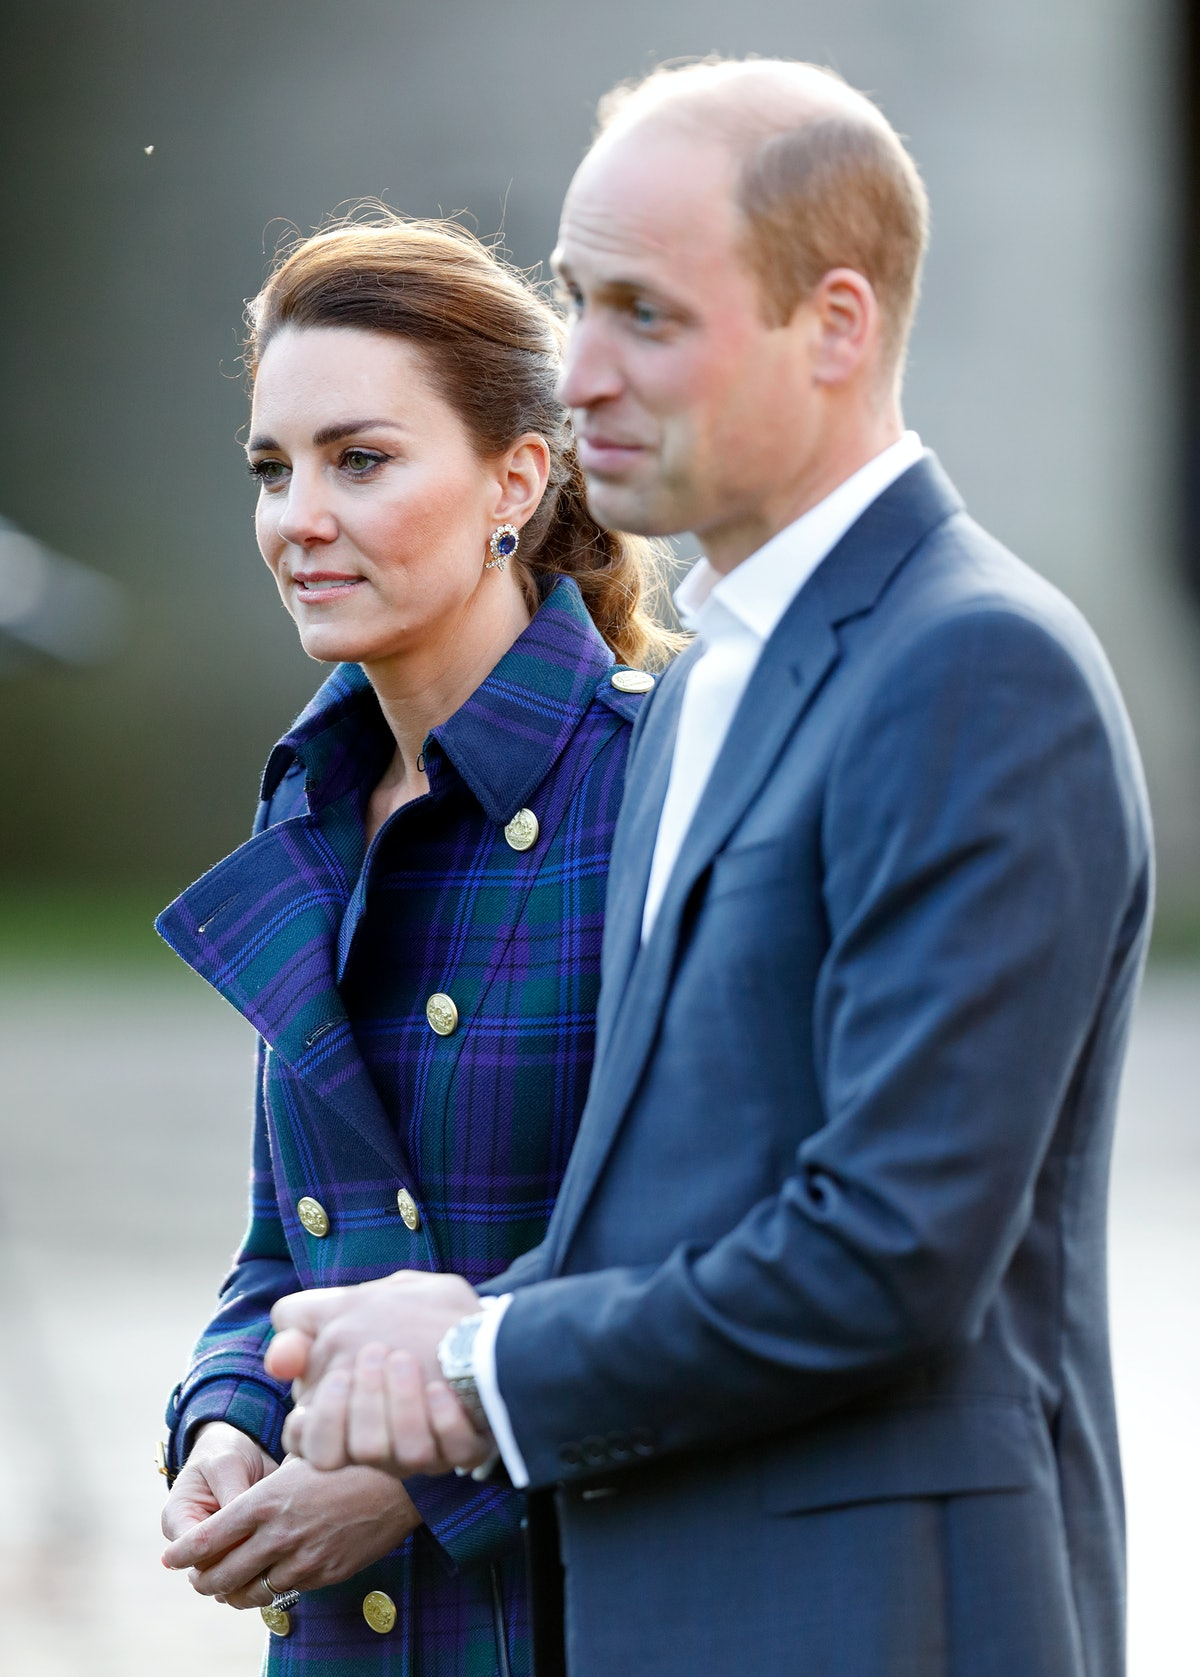 The Duke and Duchess of Cambridge, shown here attending a royal event, will not appear together at Princess Diana's statue unveiling.